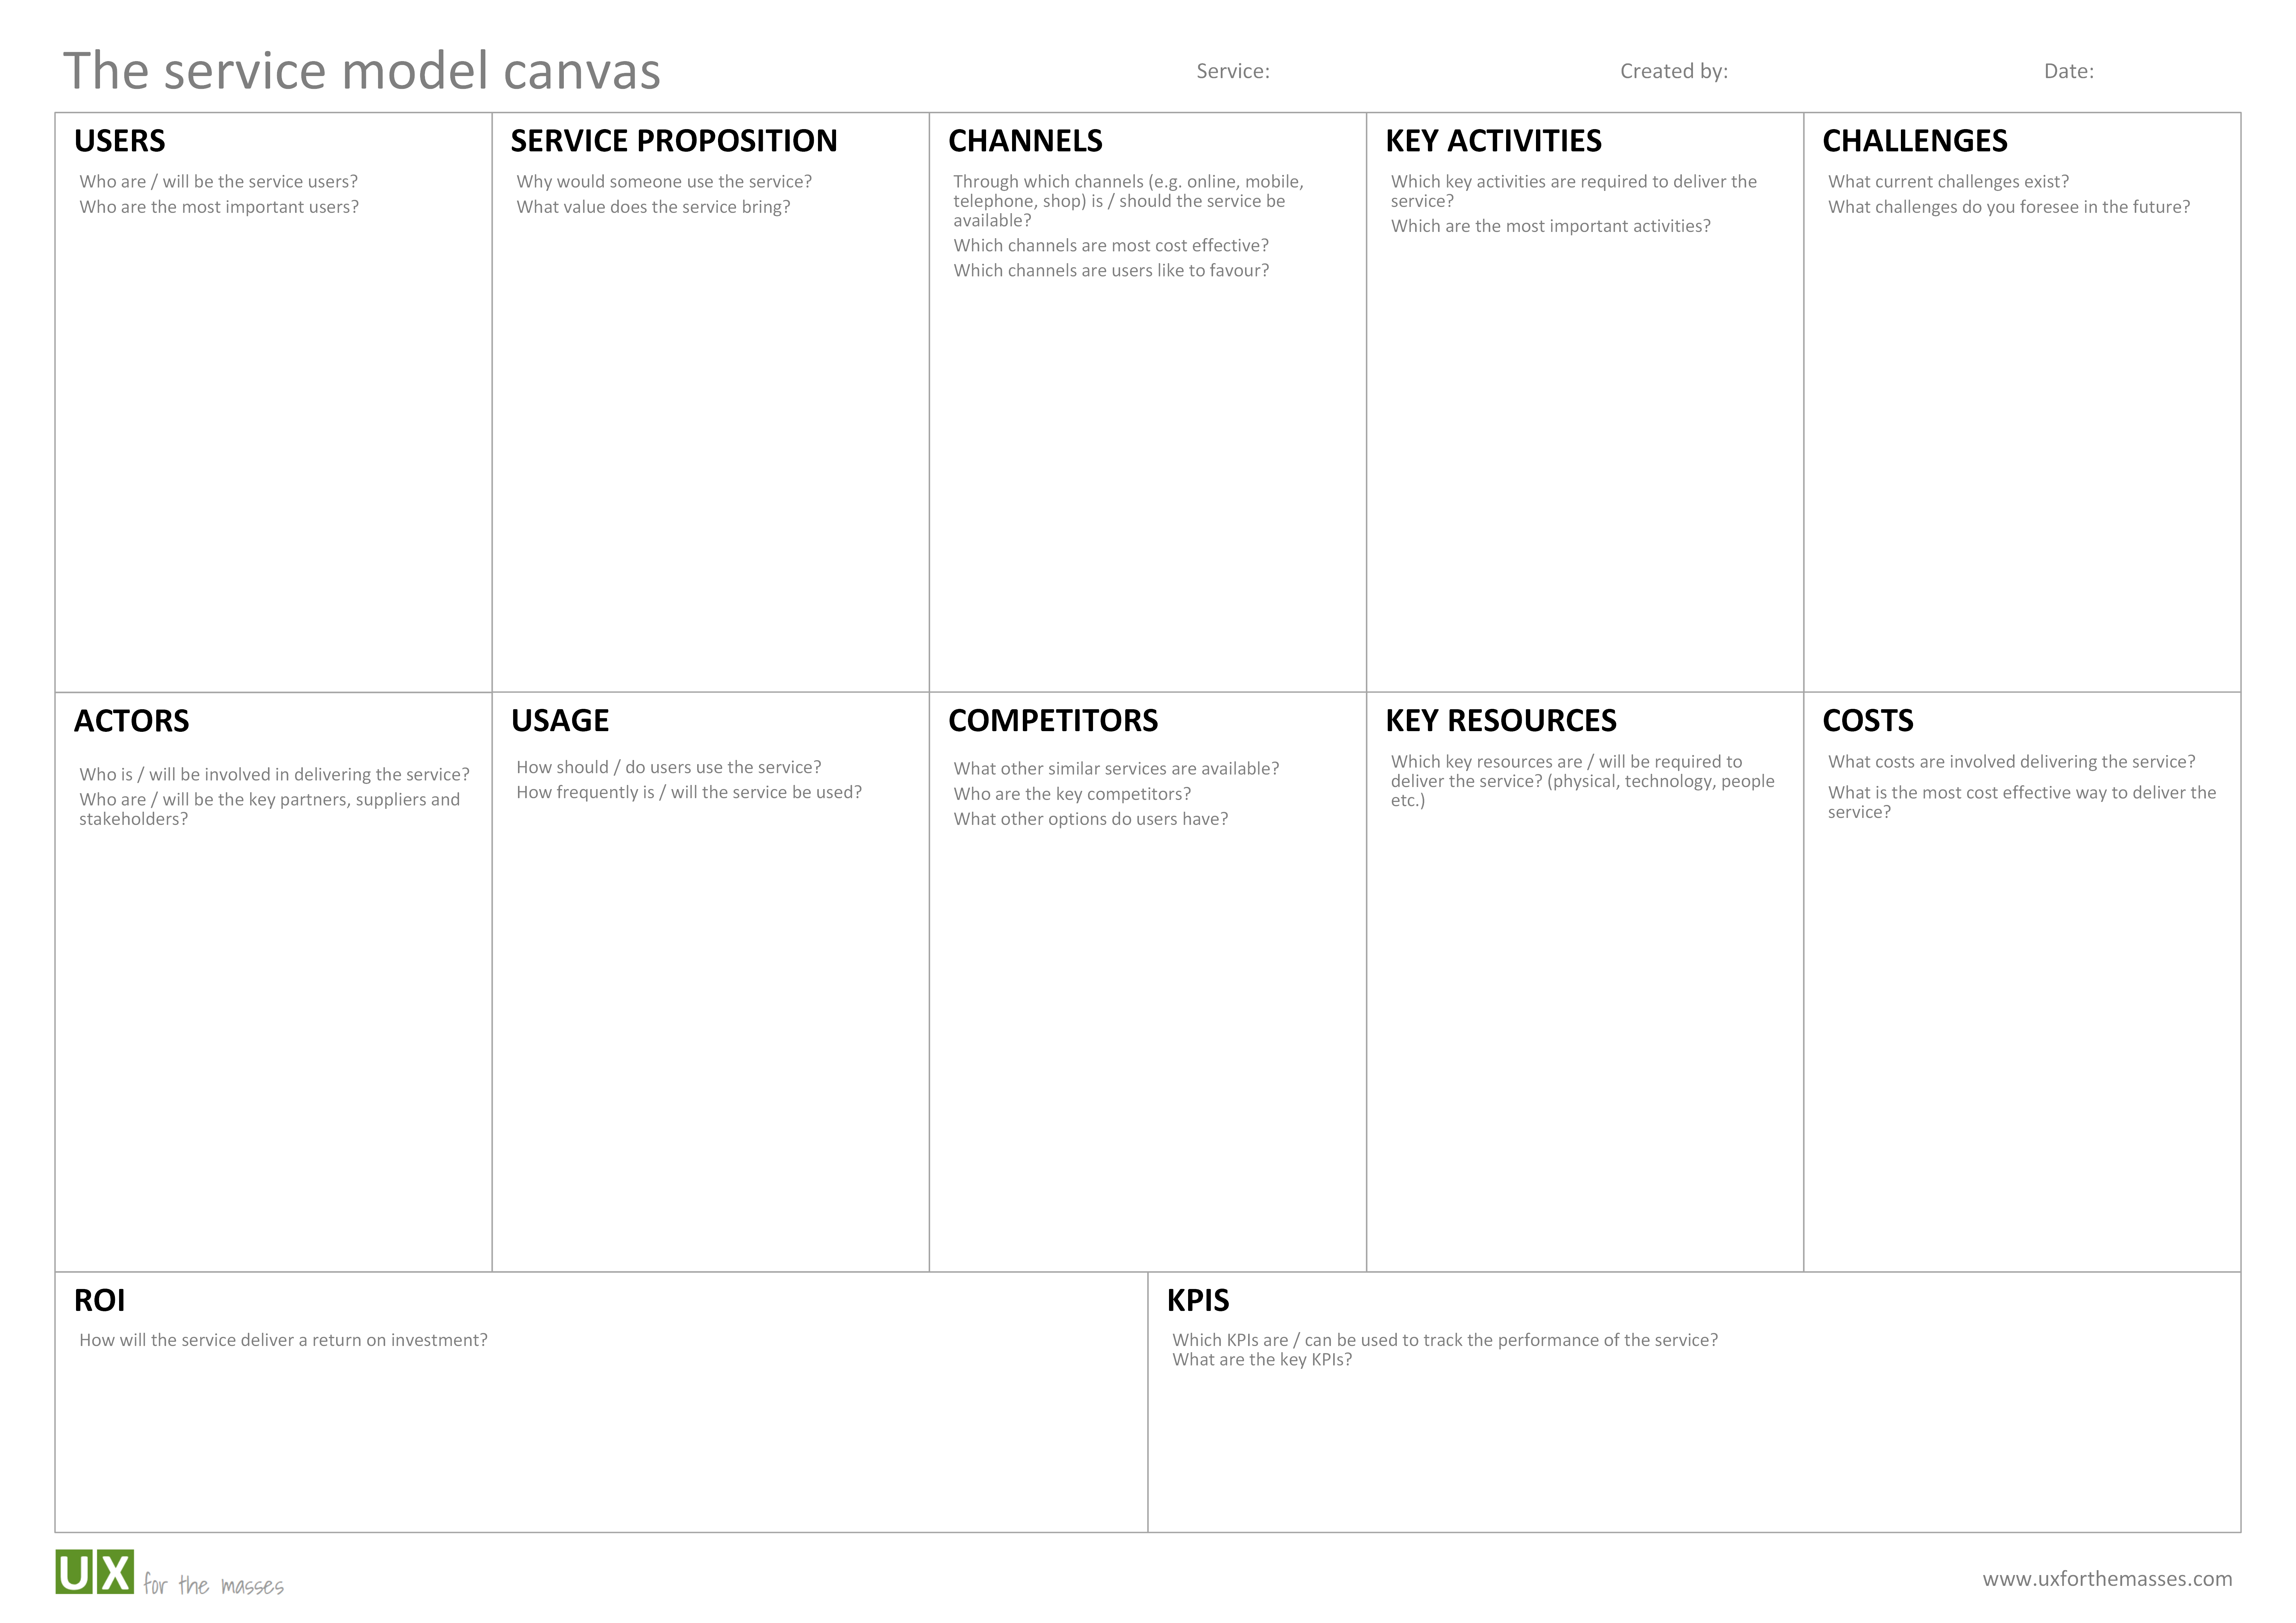 Introducing the service model canvas uxm download service model canvas template png image wajeb Image collections